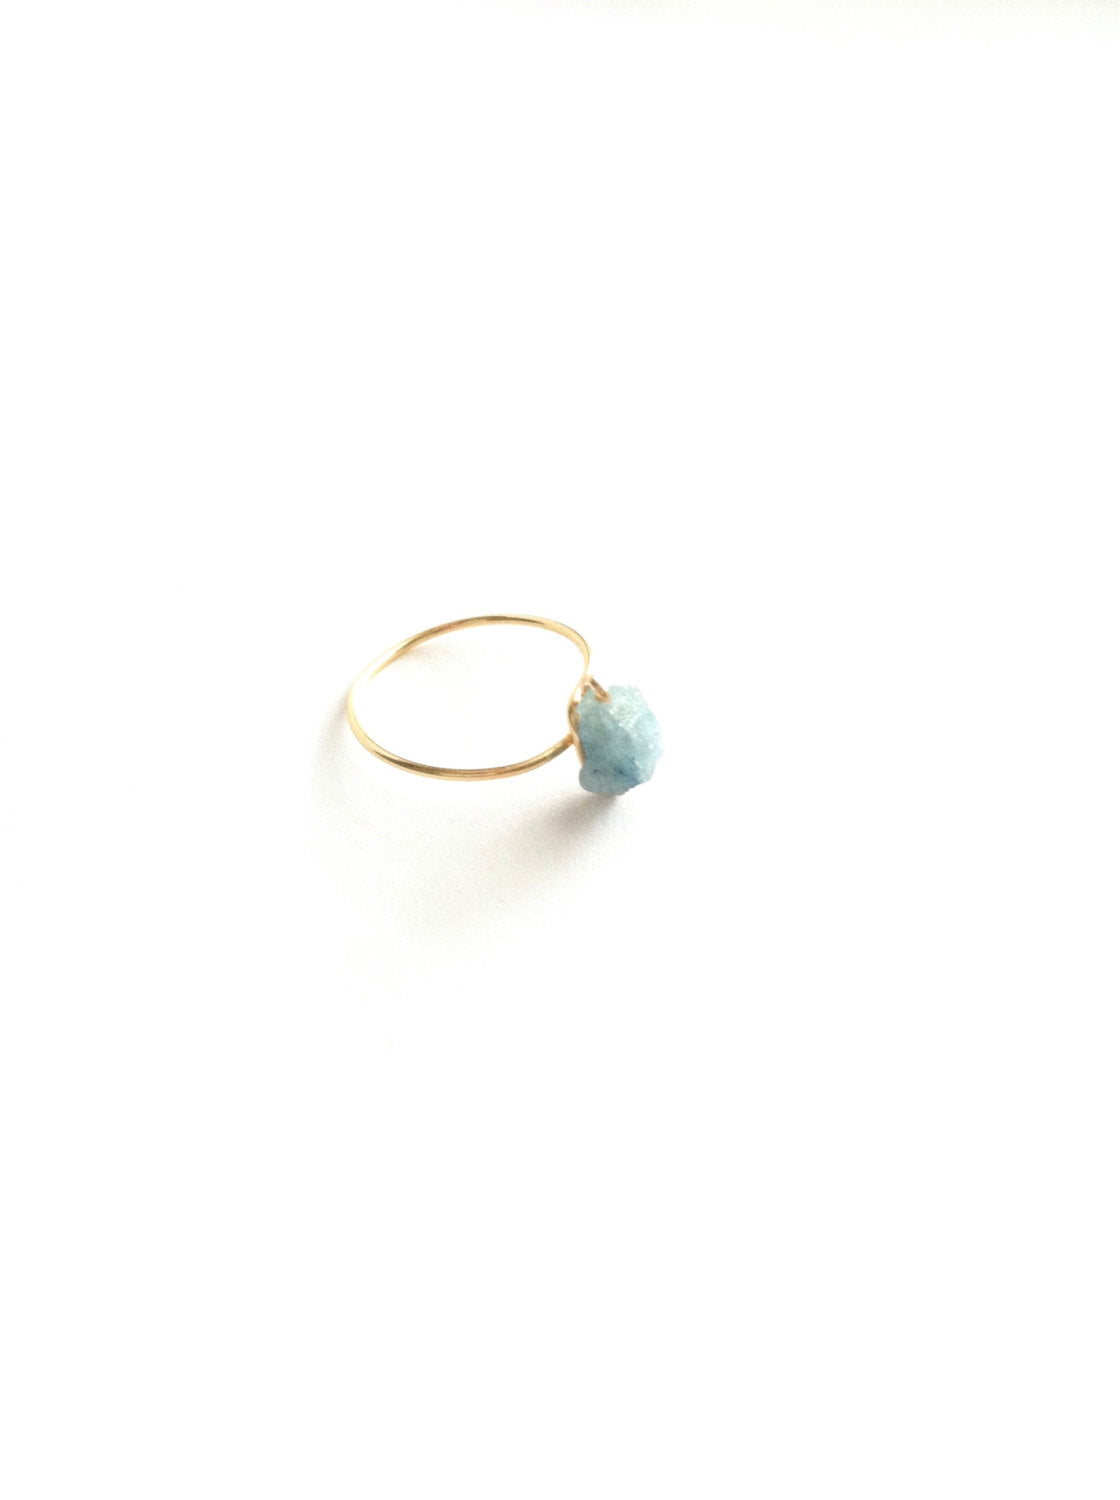 Raw Aquamarine Thin Band Gemstone Ring | IB Jewelry